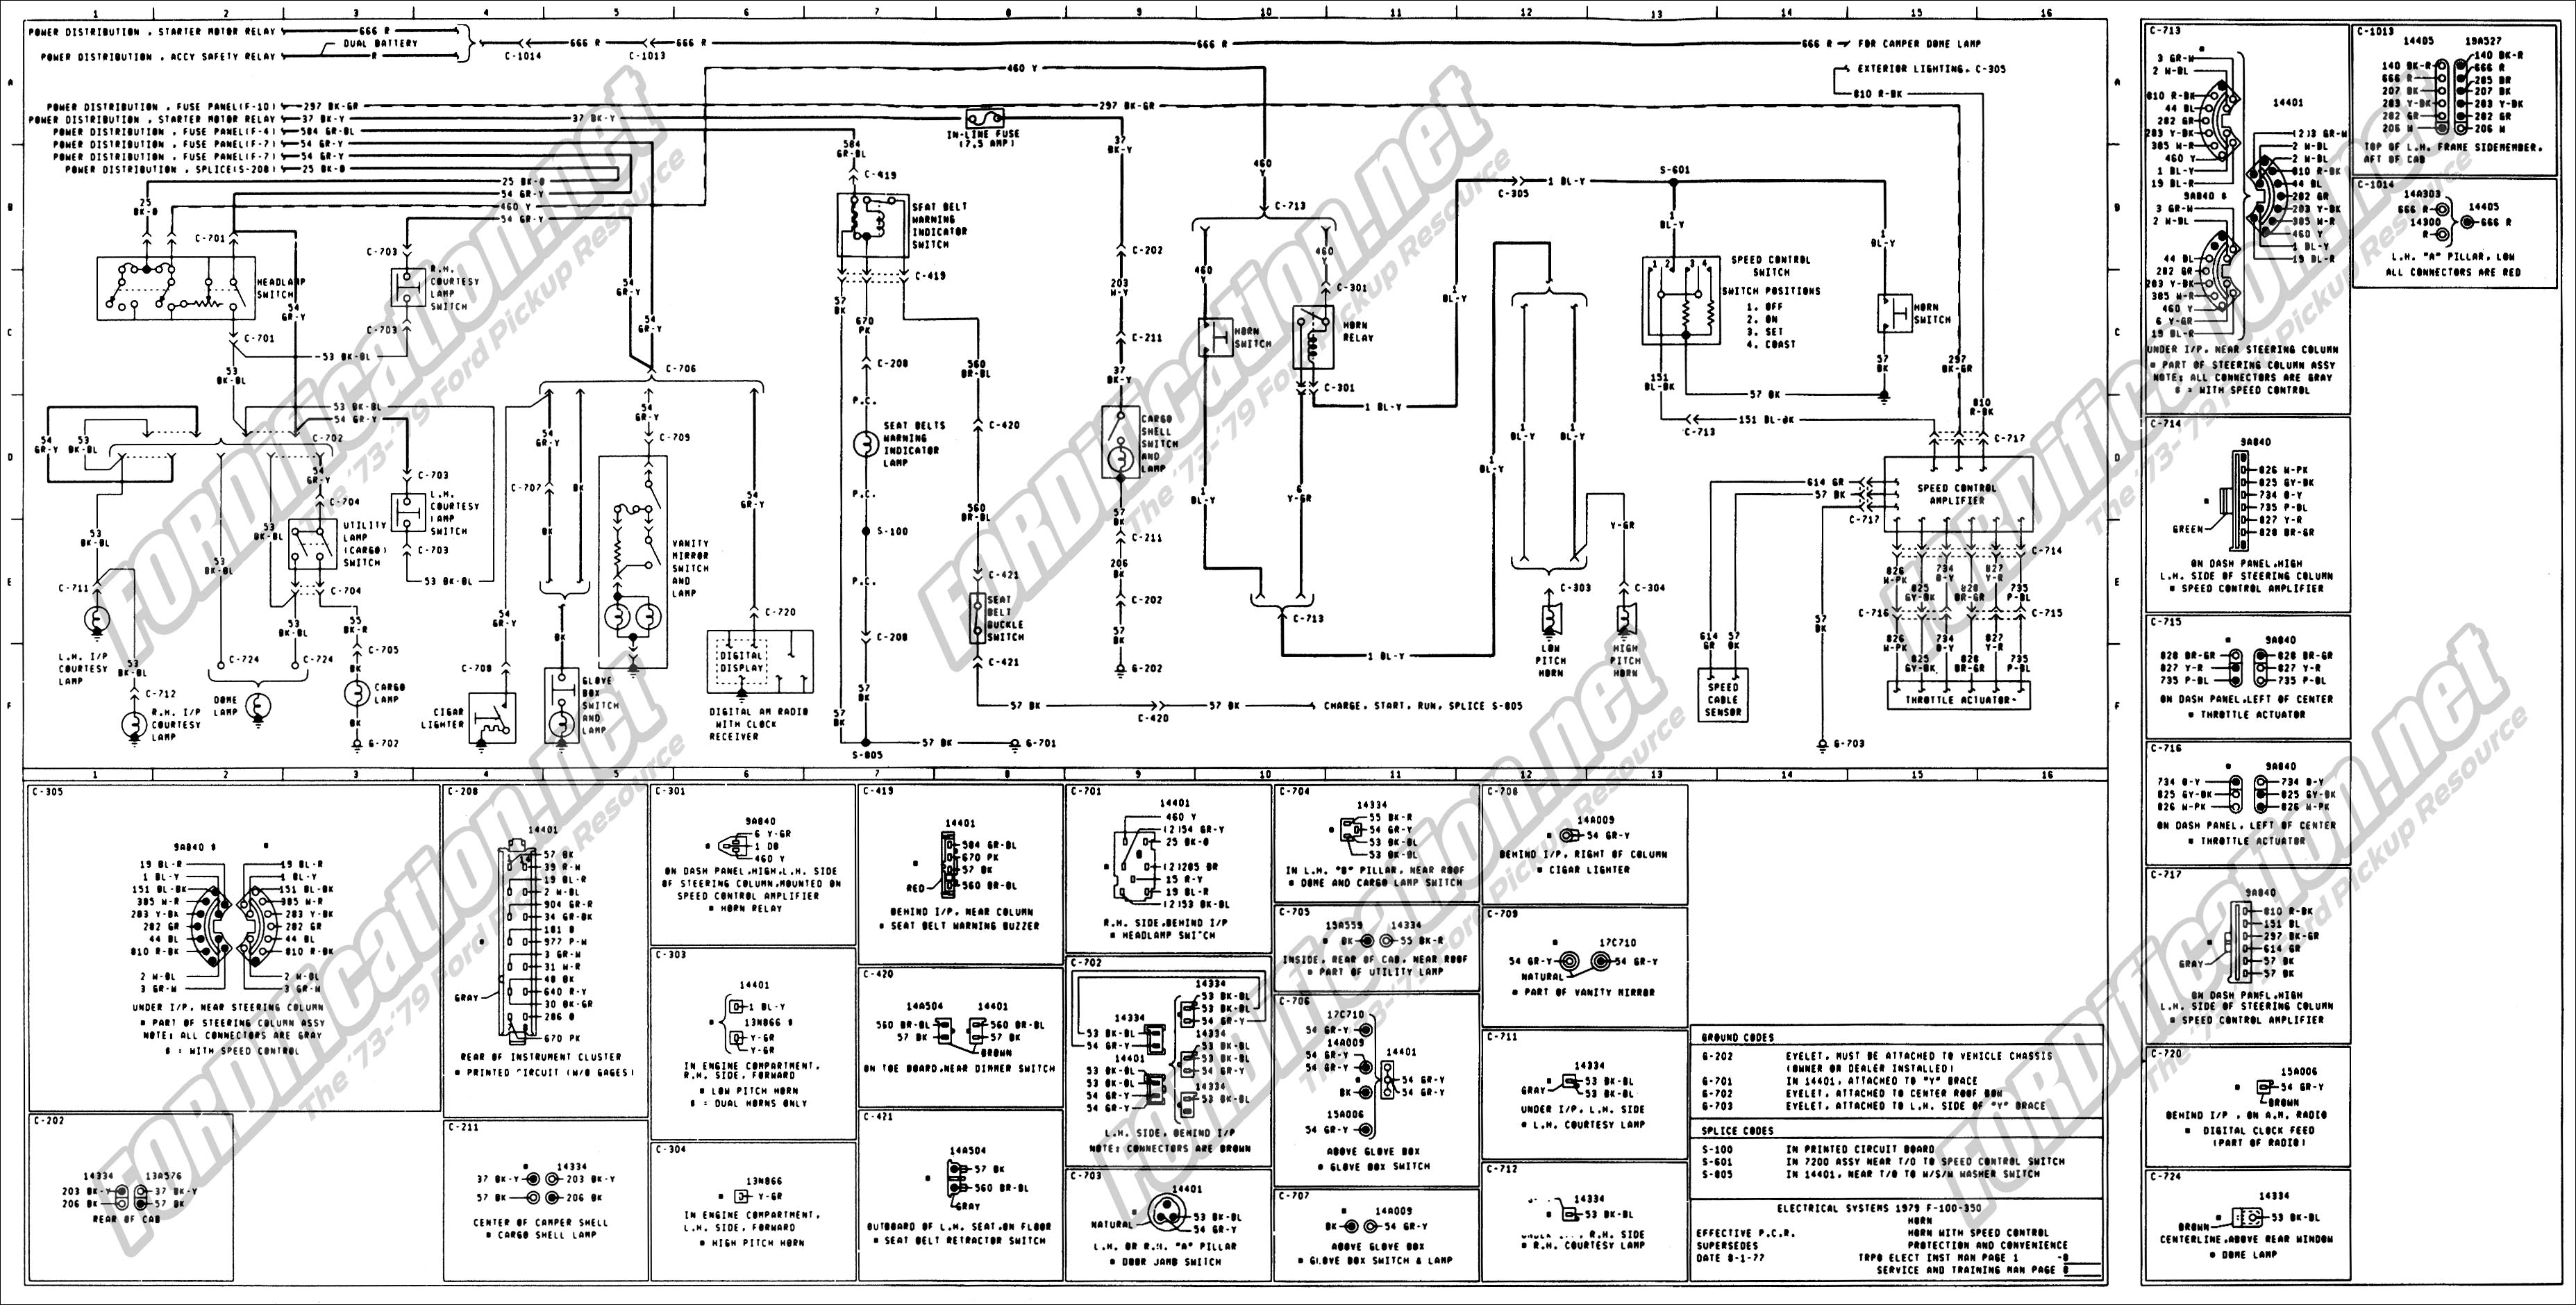 Fuse Box Schematic For 1979 Bronco Just Wiring Data 2011 Mustang Wiring  Diagram Master Wiring Diagram 68 Mustang Fuse Diagrams